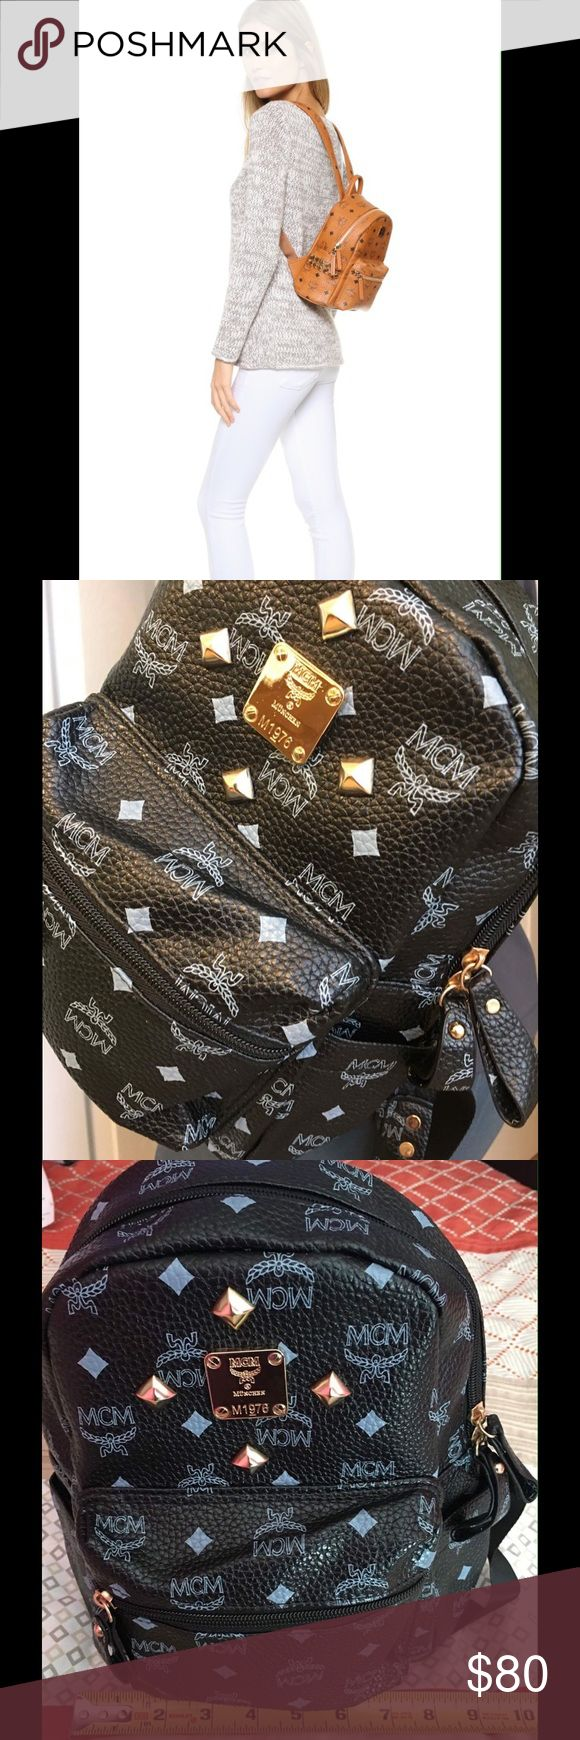 """Backpack mini/ kiddie size mcm Selling mini backpack for adults and kids. High quality. Price reflects #mcm# available in Black, navy blue, pink, beige and brown. $80 is the price for 1 backpack.  PLEASE CHECK CAREFULLY THE SIZE OF THIS BAG. W: 9"""" and Height is 12"""". MCM Bags Backpacks"""